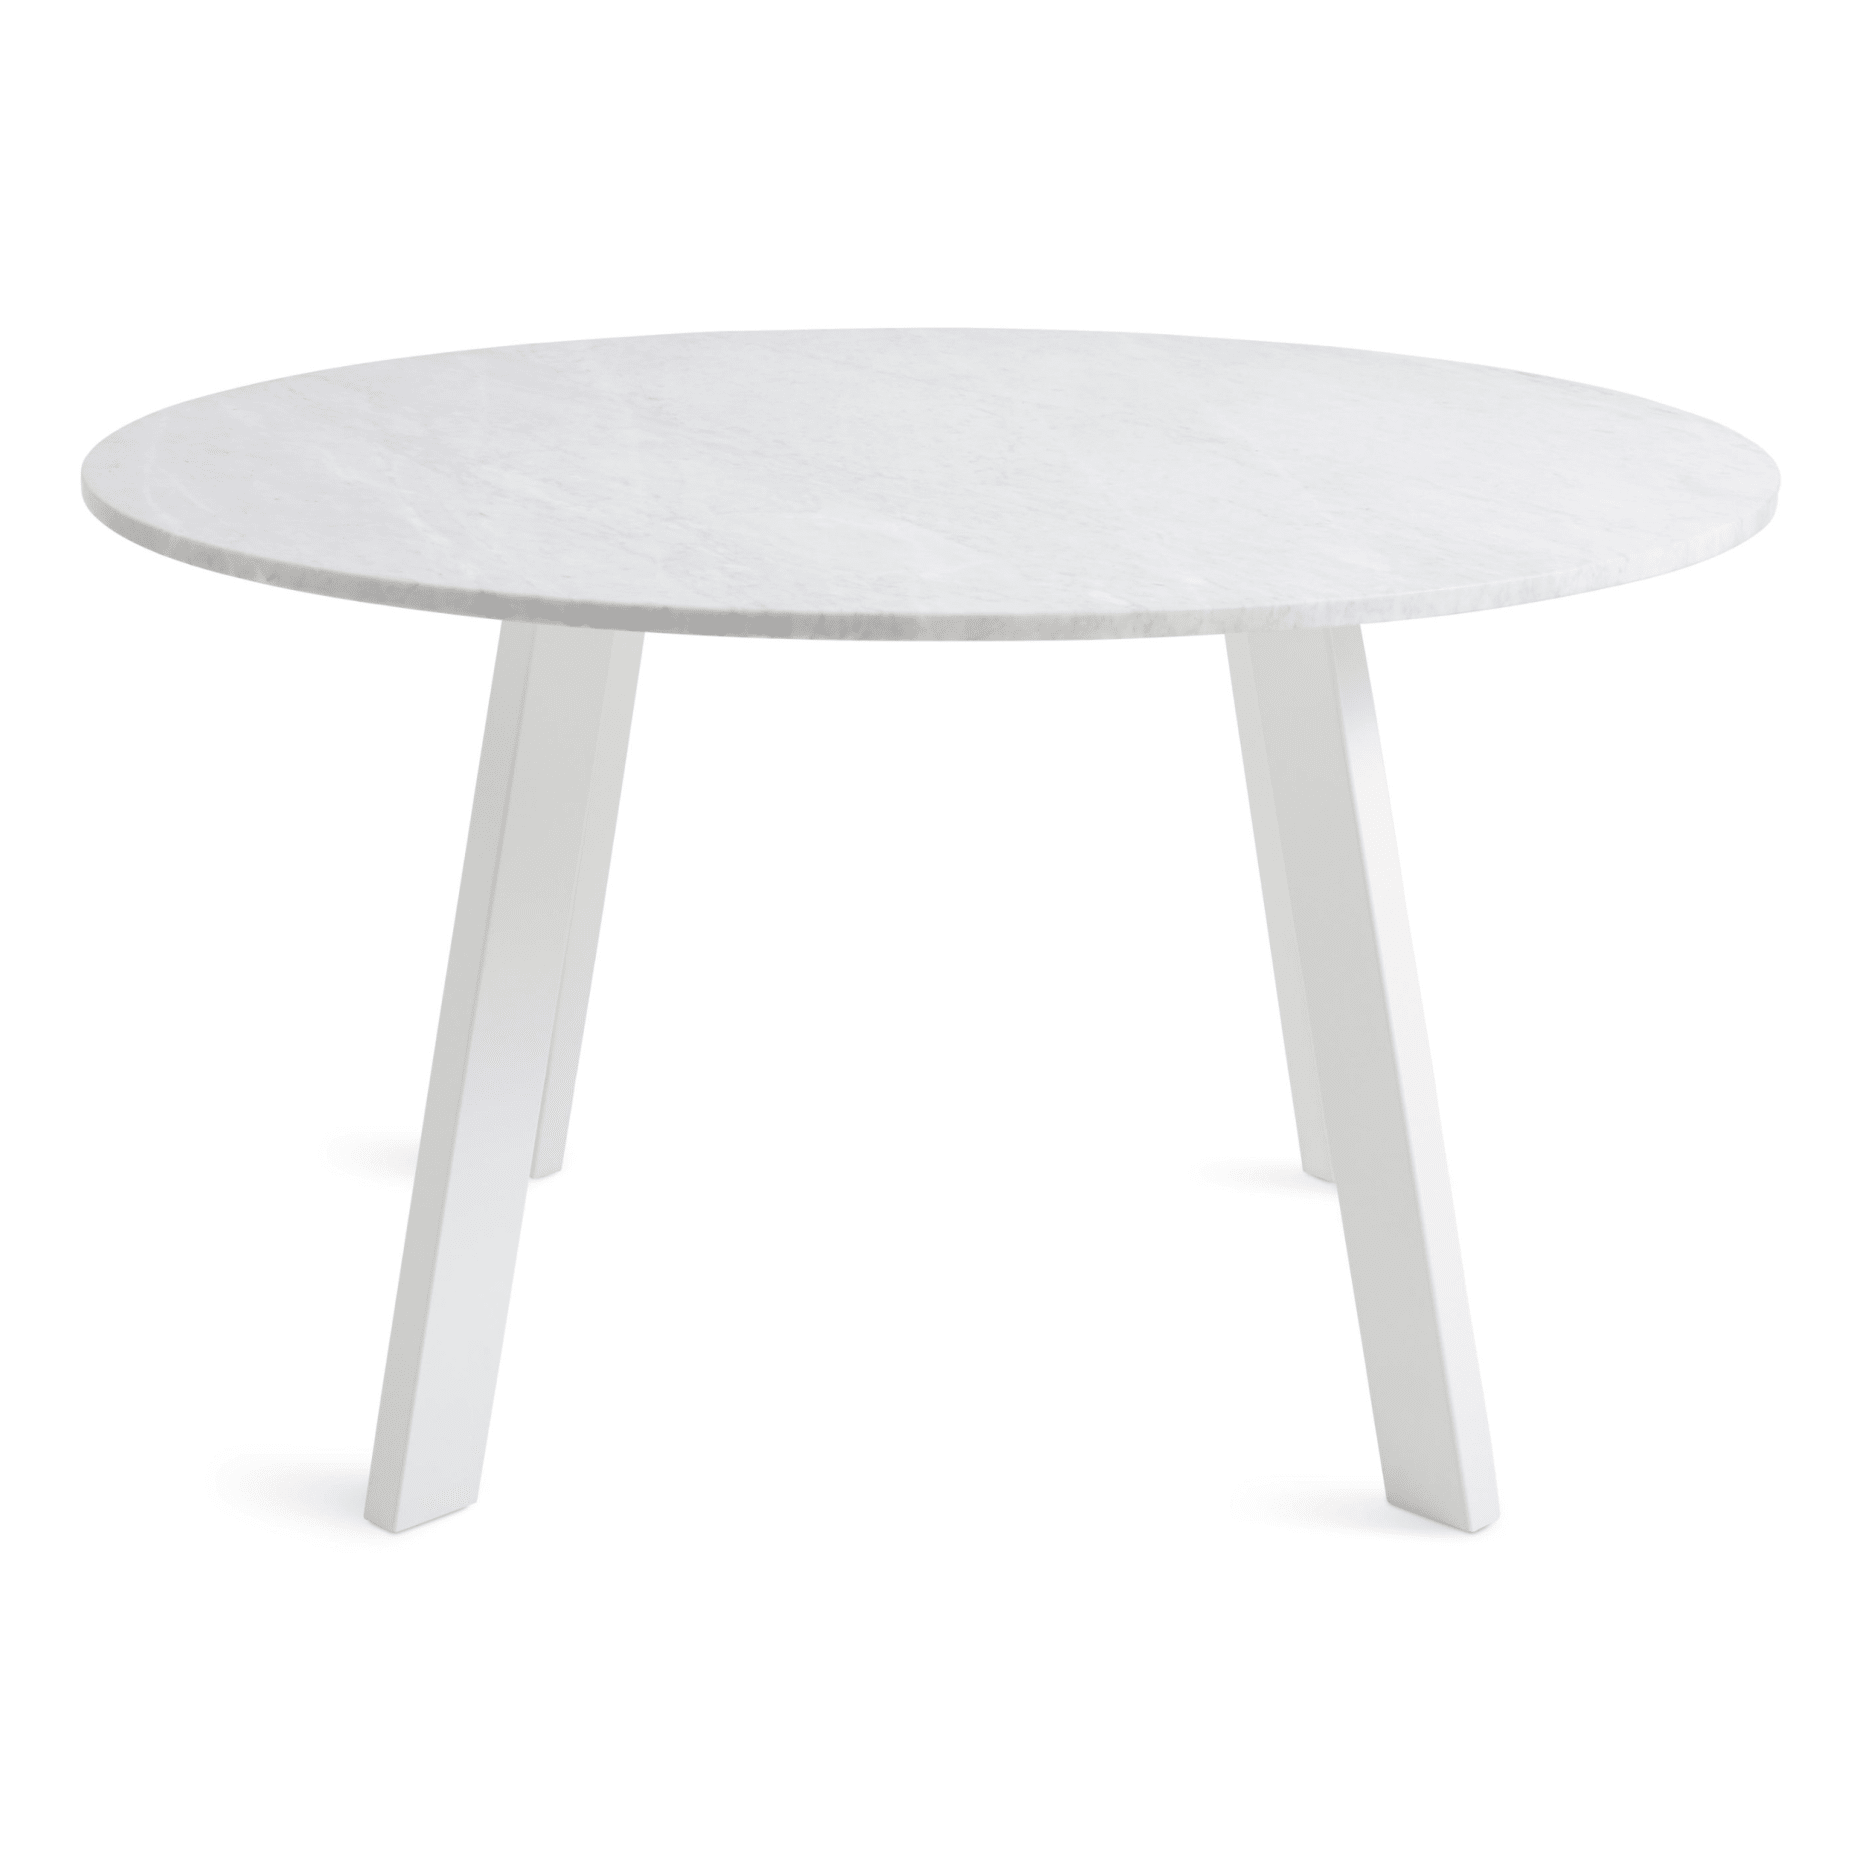 Right Round 52 Marble Dining Table White Round Dining Table